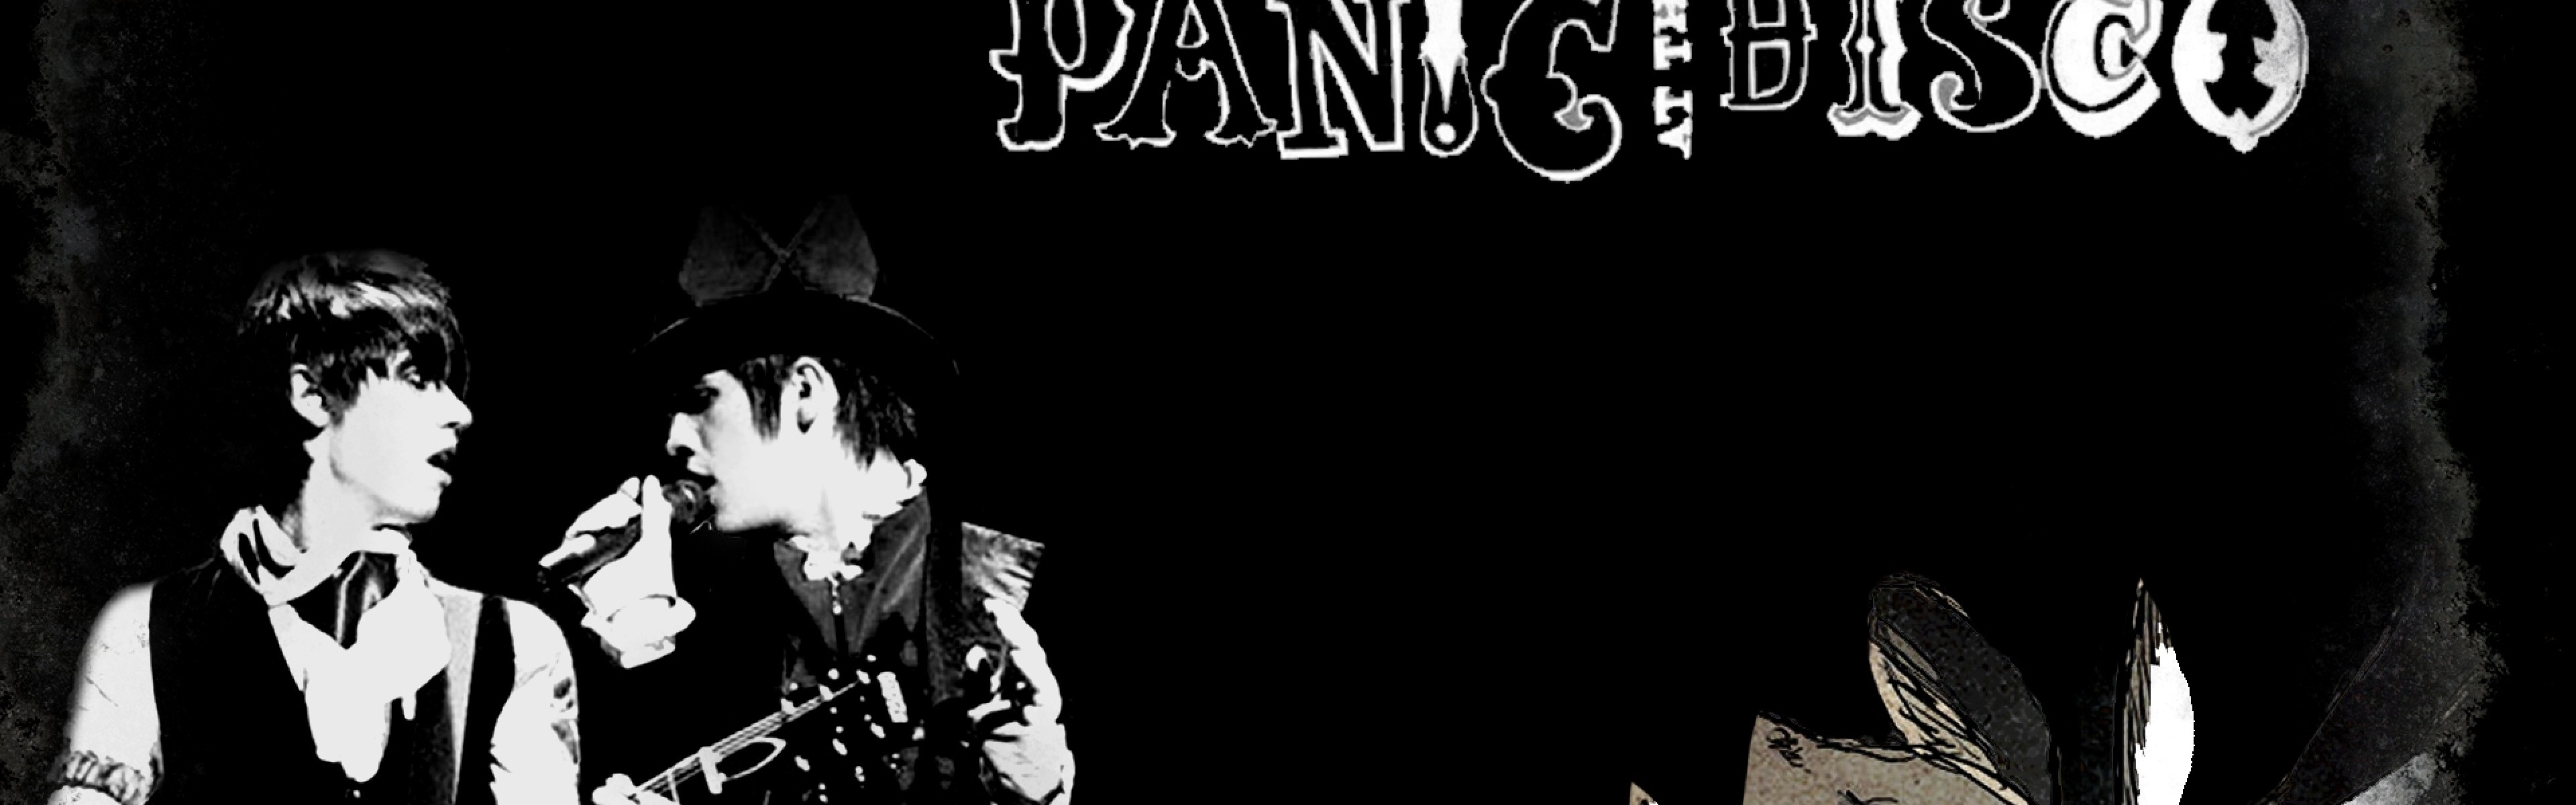 Panic at the Disco Wallpapers (74+ images)